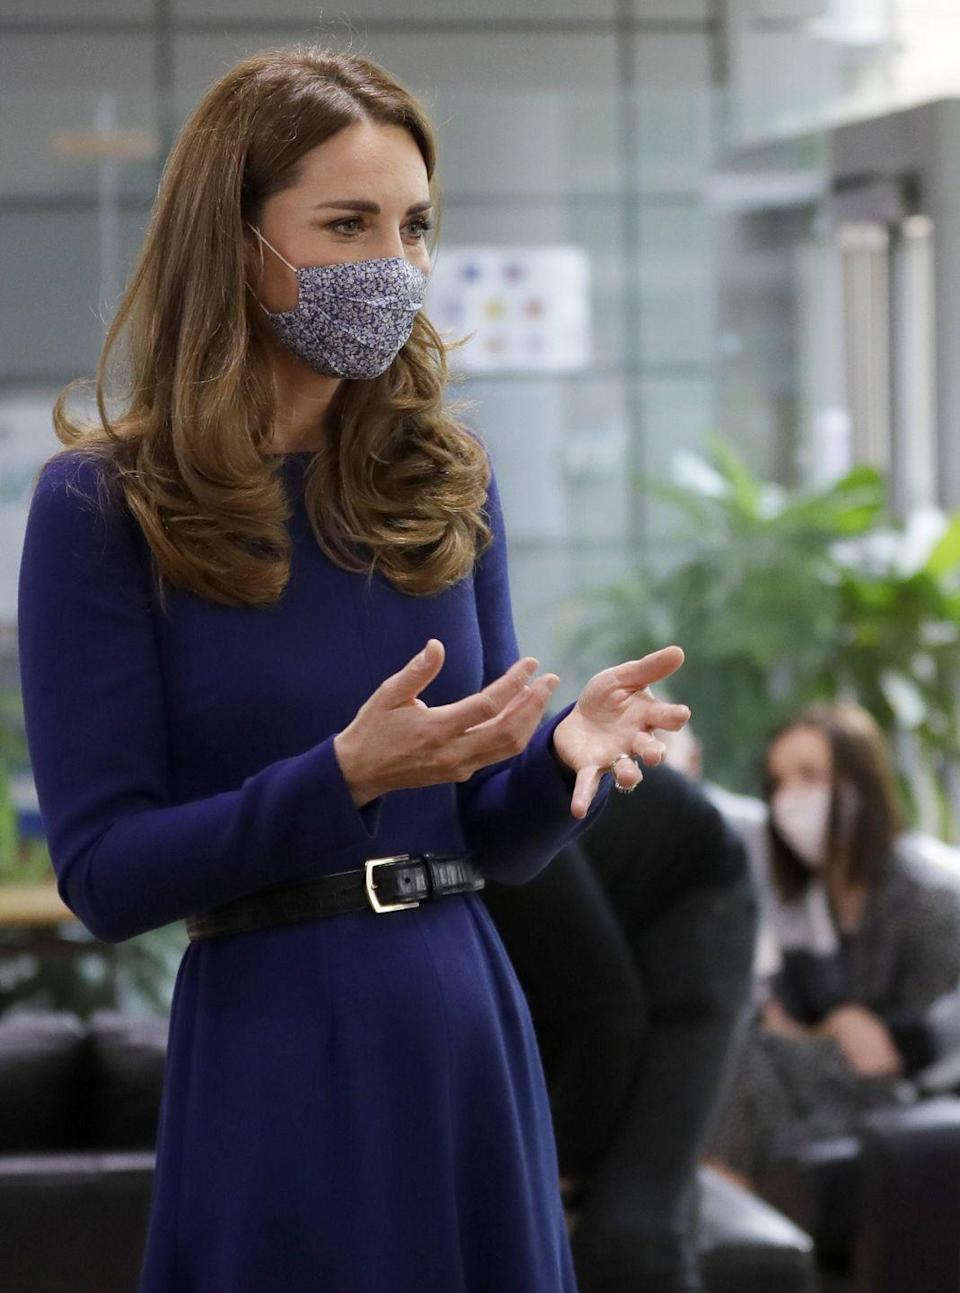 """<p>The Duchess of Cambridge visited the Institute of Reproductive and Development Biology at London's Imperial College. Though she wore a white lab coat for most of the day, underneath, Kate sported an indigo, long-sleeved Emilia Wickstead dress, with a black belt and blue floral mask. </p><p><a class=""""link rapid-noclick-resp"""" href=""""https://go.redirectingat.com?id=74968X1596630&url=https%3A%2F%2Fwww.net-a-porter.com%2Fen-us%2Fshop%2Fproduct%2Femilia-wickstead%2Fjorgie-ruched-cloque-midi-dress%2F1262324&sref=https%3A%2F%2Fwww.redbookmag.com%2Flife%2Fg34824194%2Fkate-middleton-fashion%2F"""" rel=""""nofollow noopener"""" target=""""_blank"""" data-ylk=""""slk:Shop a Similar Style"""">Shop a Similar Style</a></p>"""